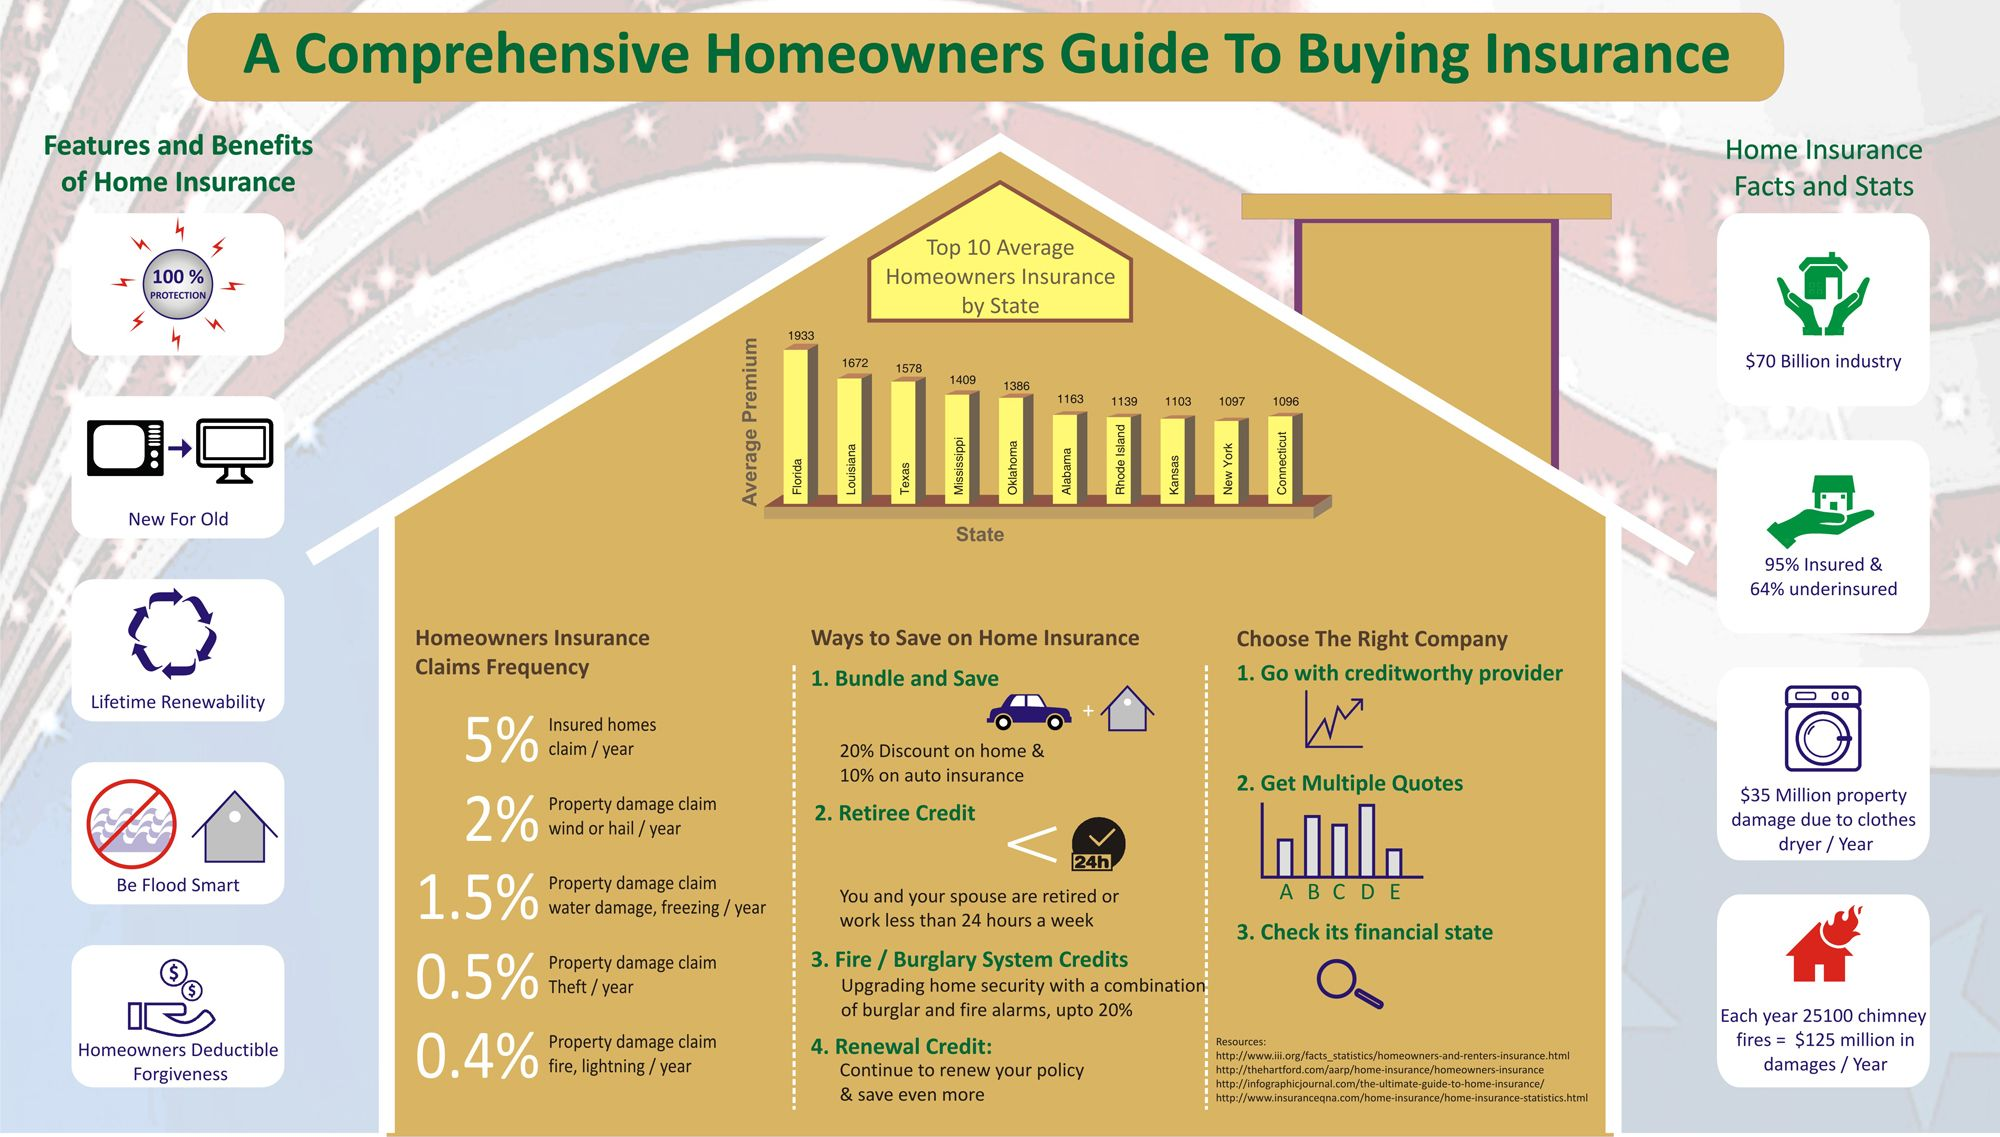 All you need to know about choosing and buying homeowner's